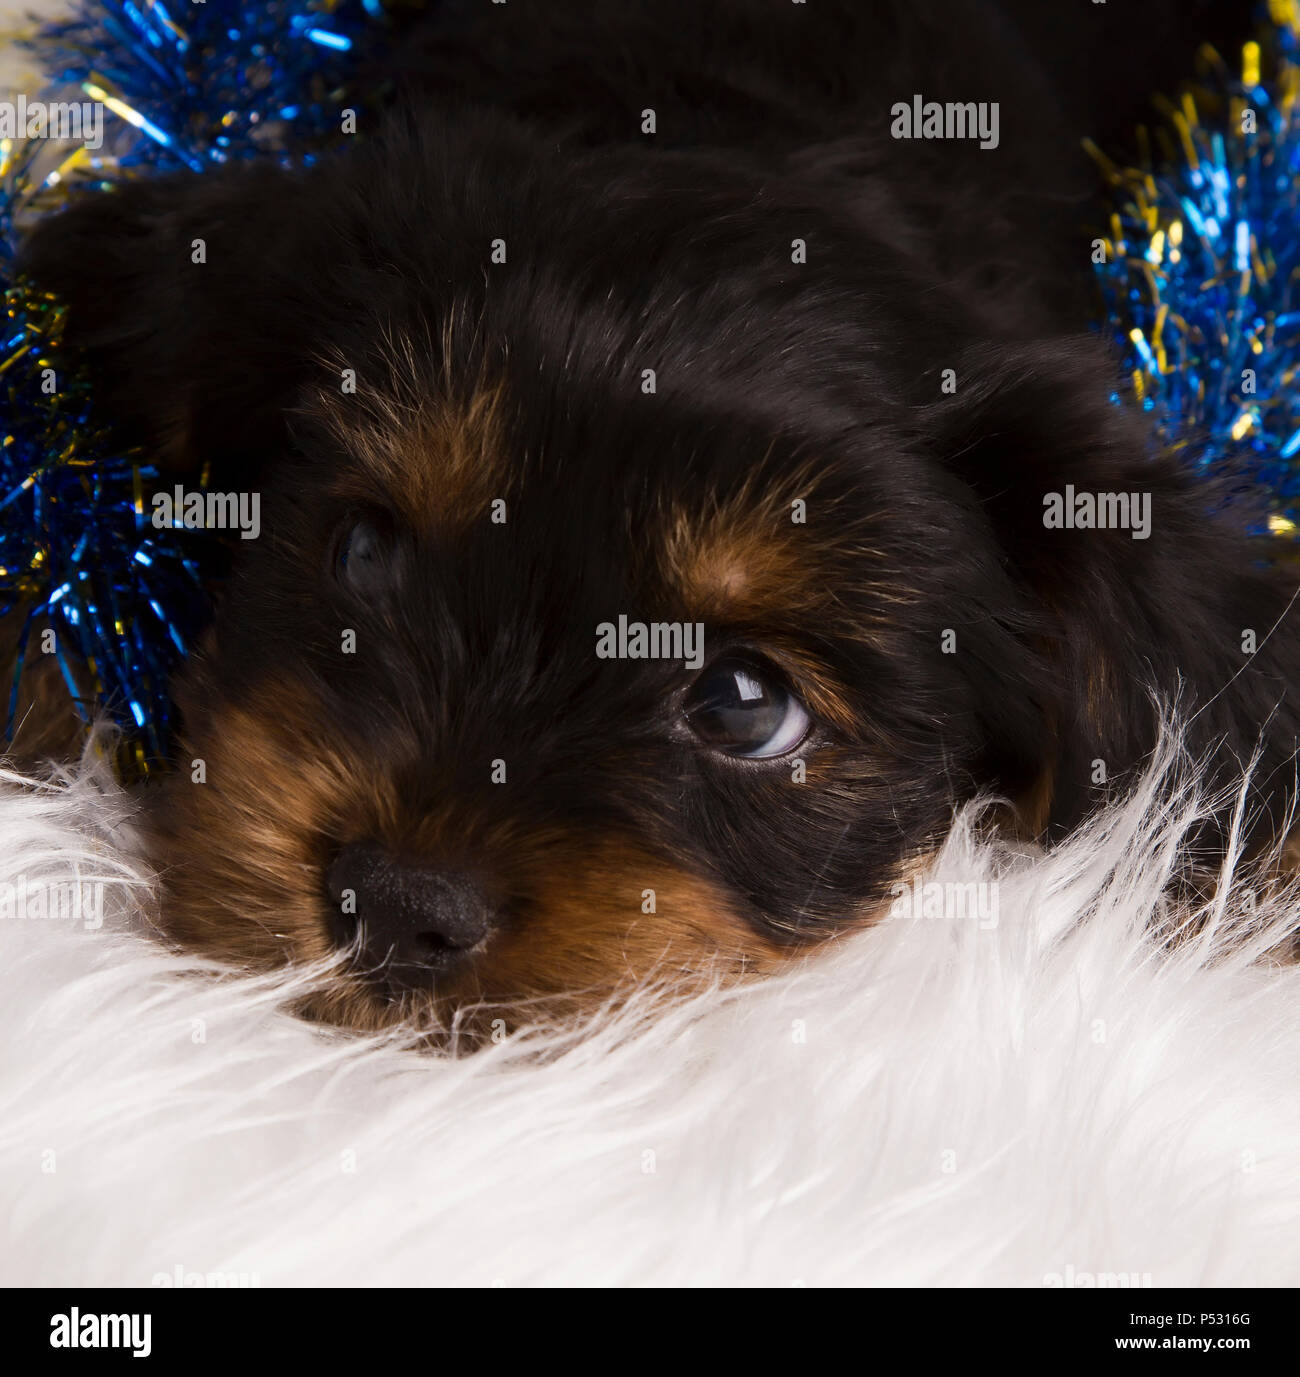 Cute Pets Baby Animals Christmas High Resolution Stock Photography And Images Alamy